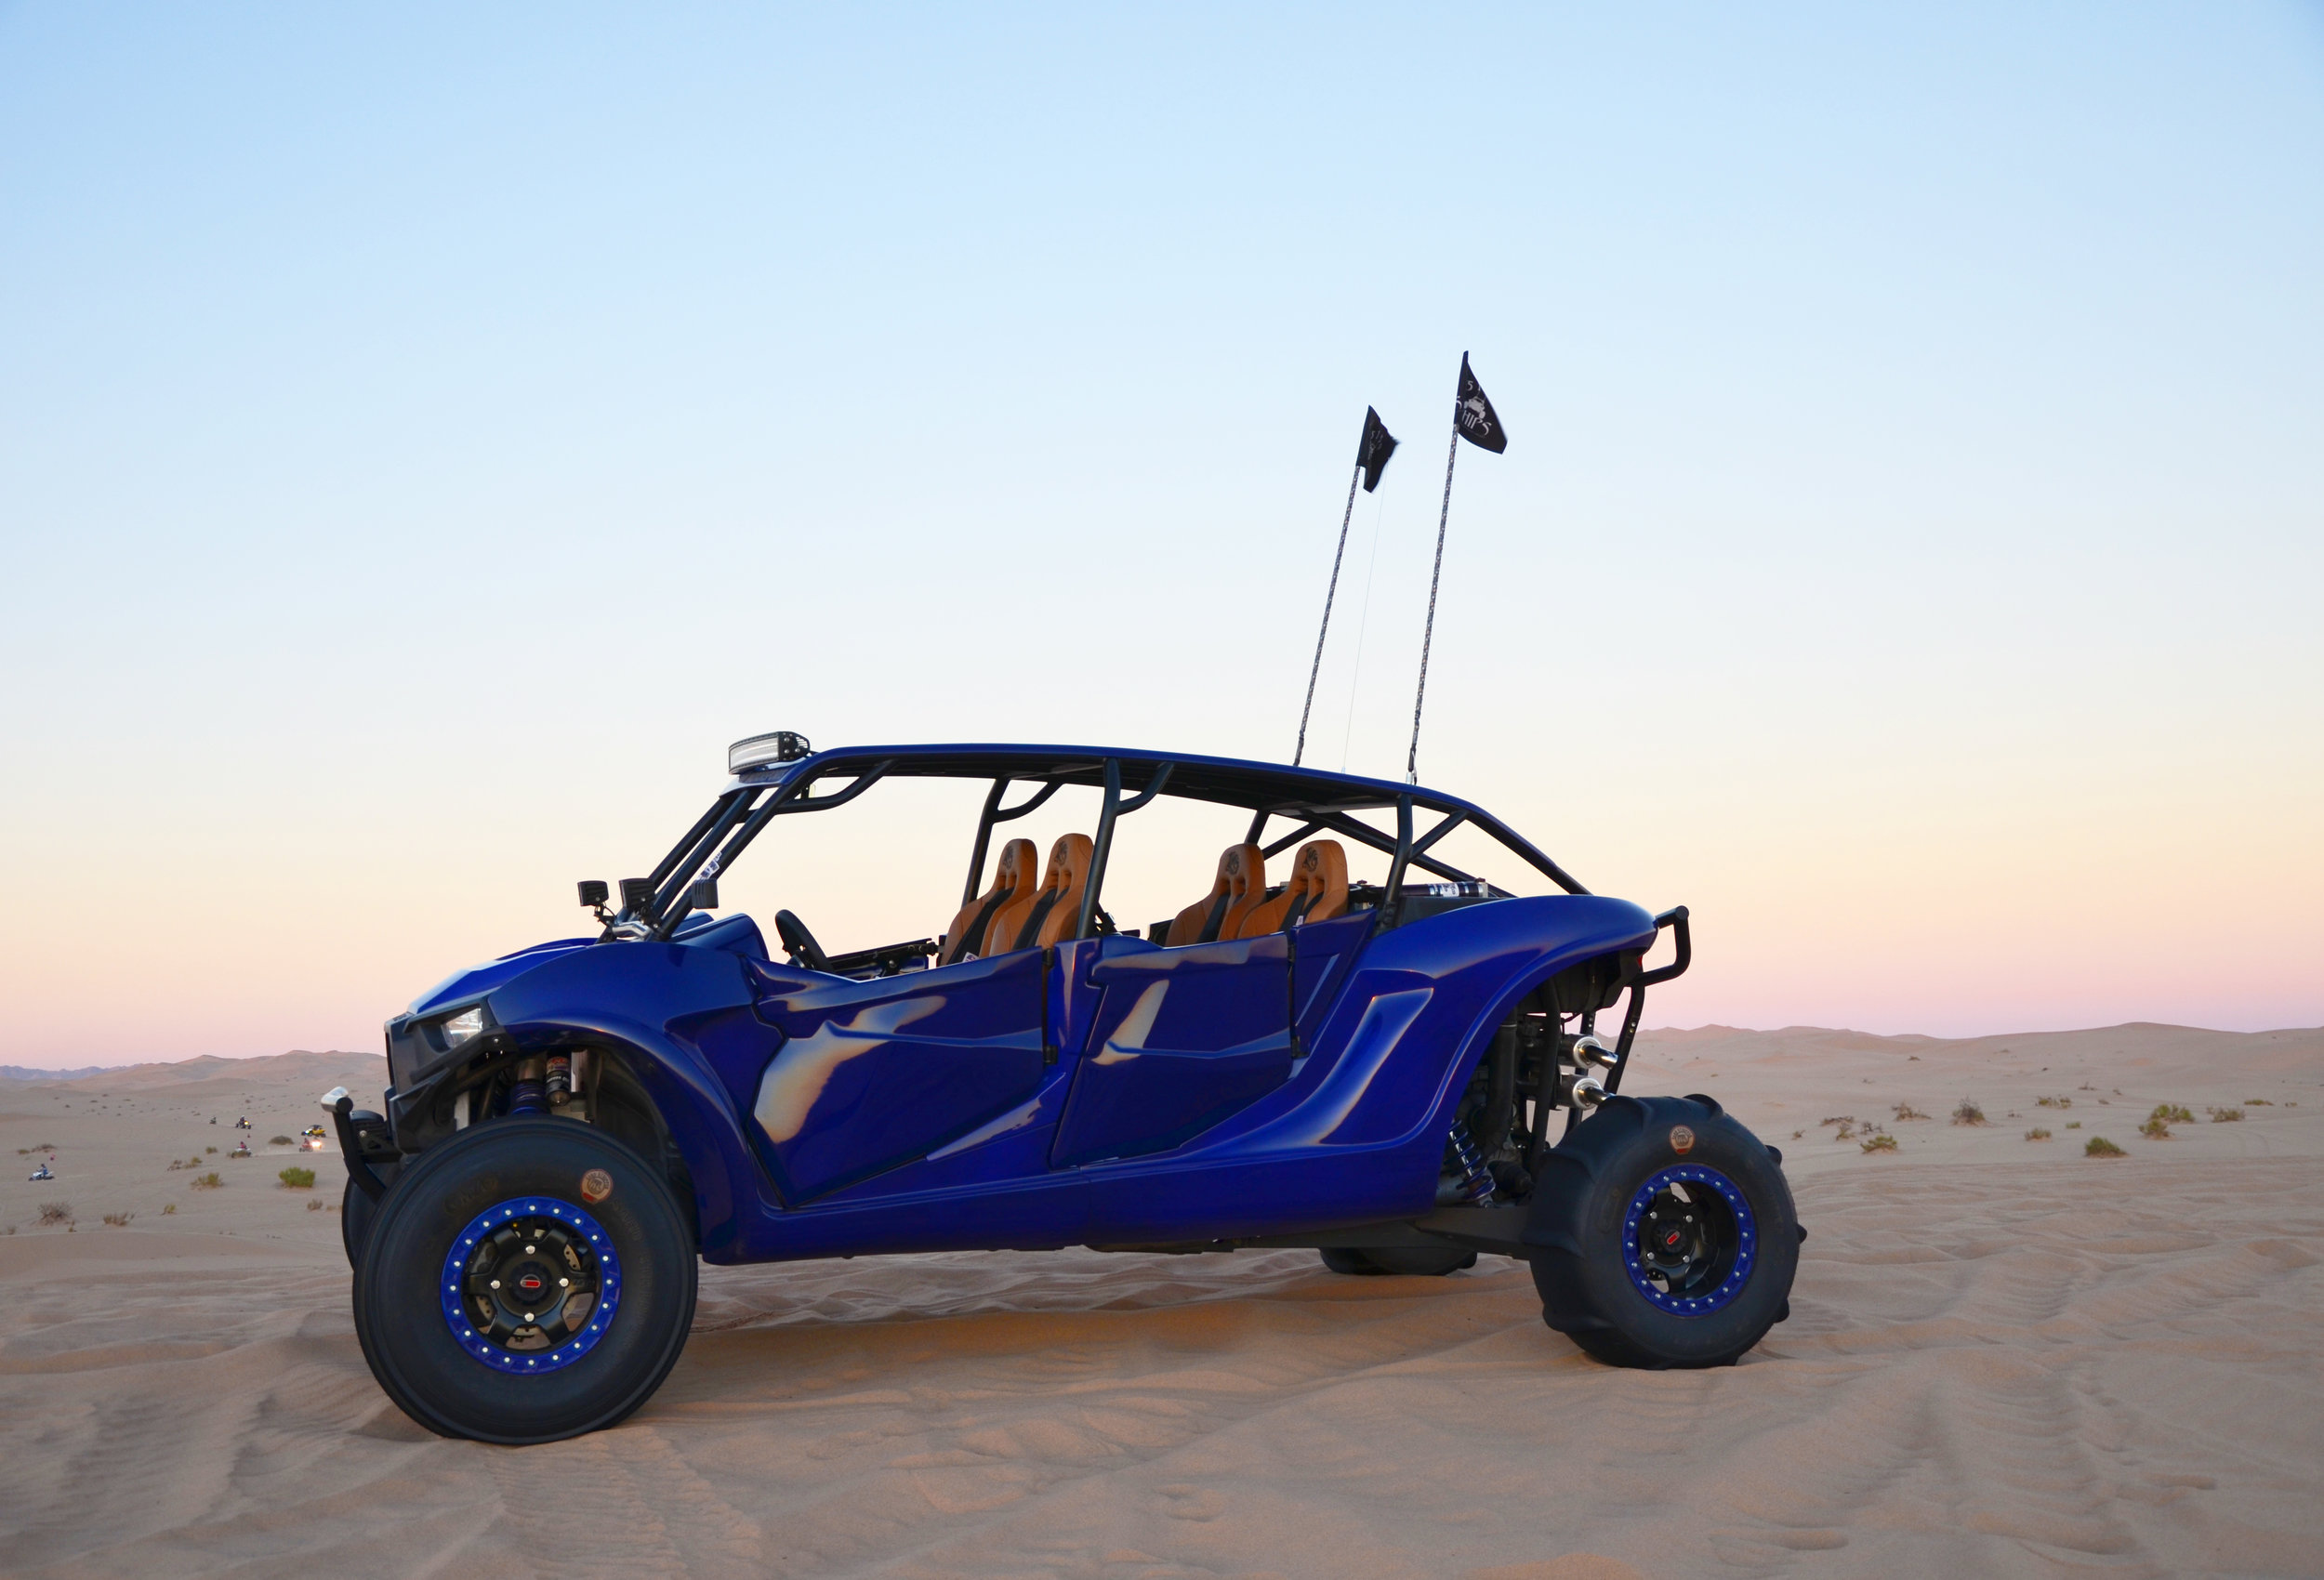 Polaris RZR XP1000 fiberglass body kit by Lavey Craft - pic 1.jpg